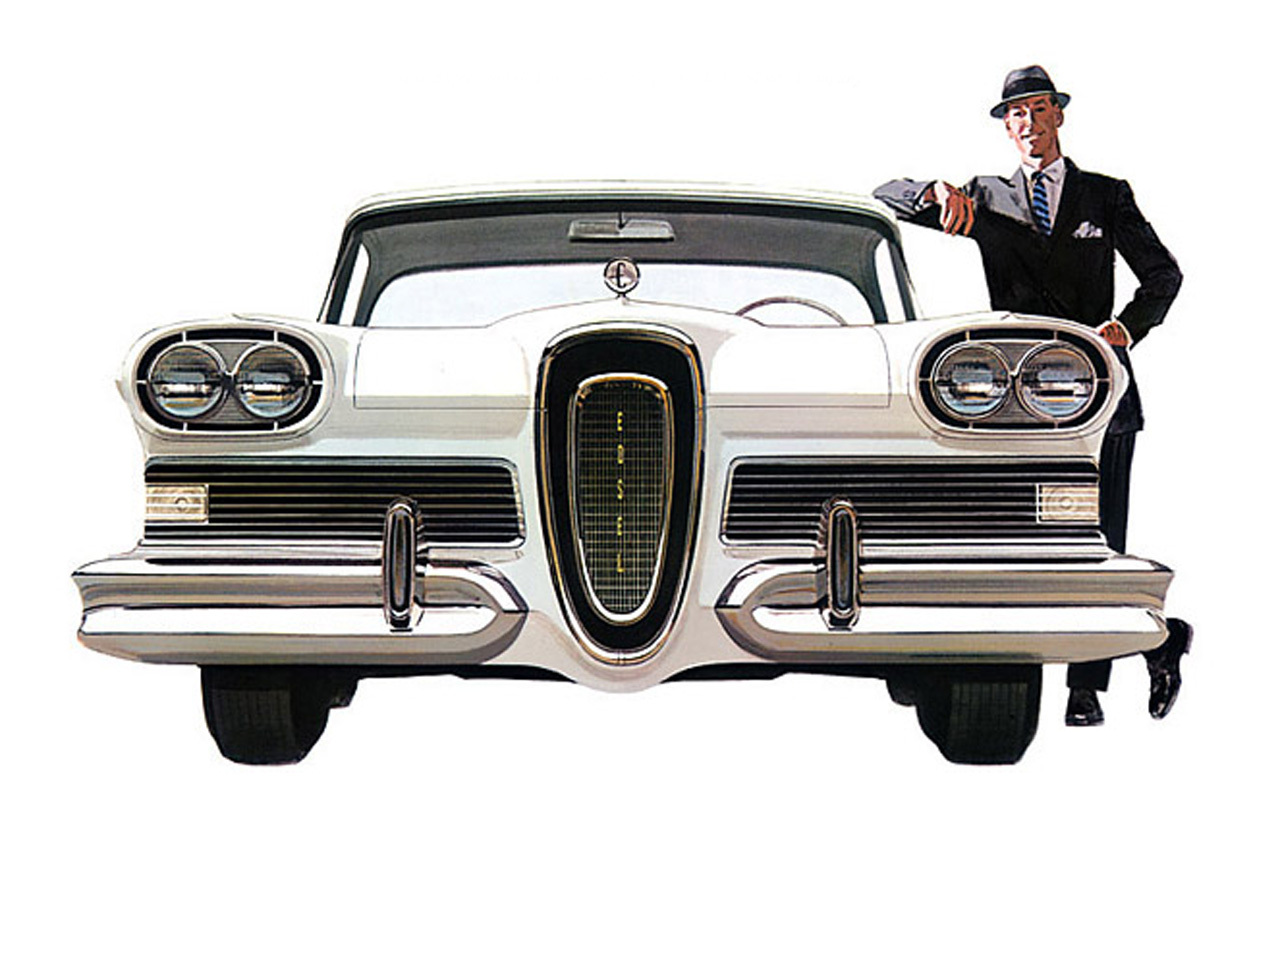 Ford Edsel Epic Embarrassing Product Failures